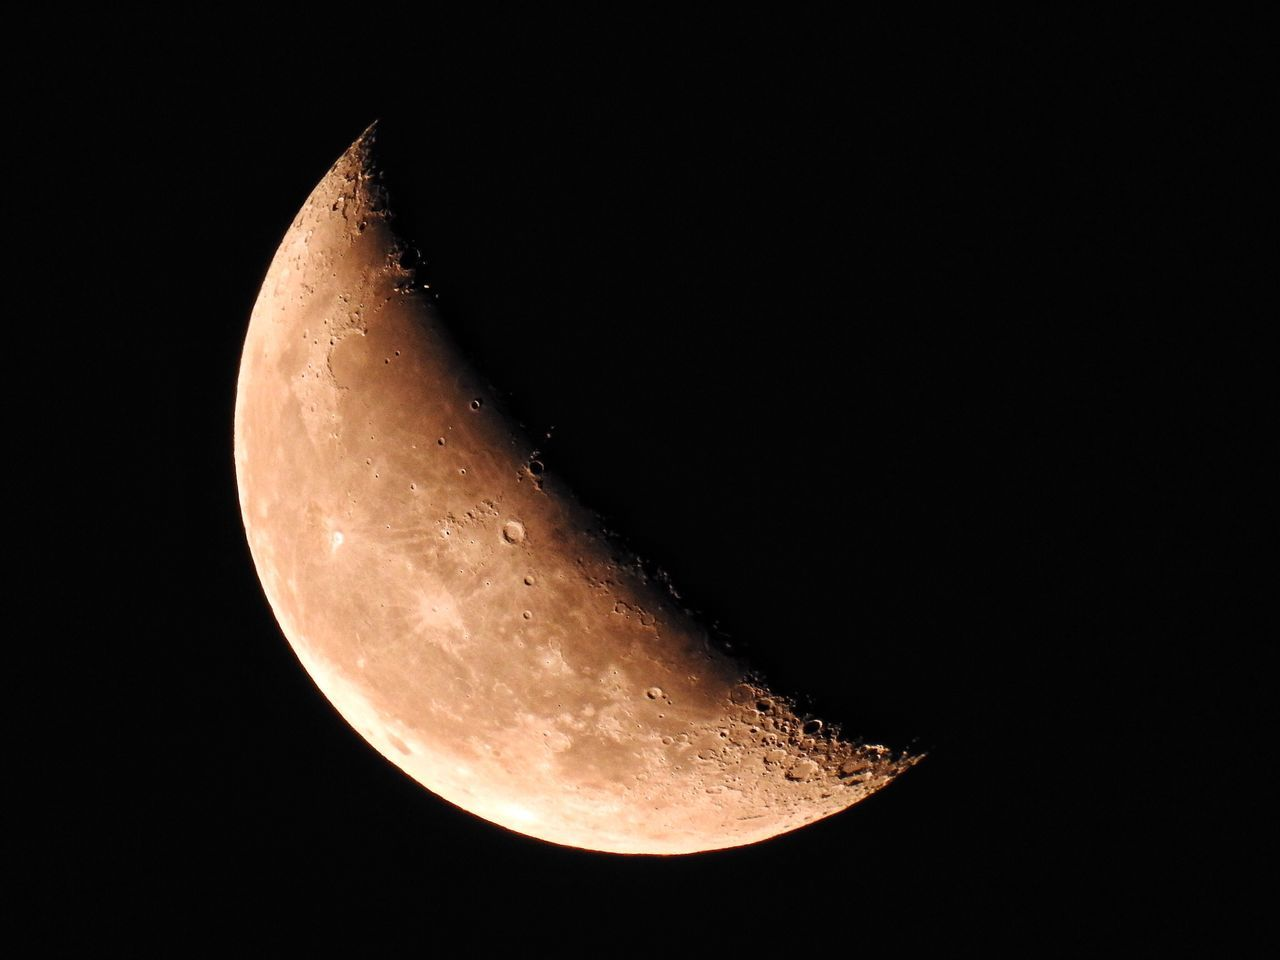 night, moon, astronomy, moon surface, beauty in nature, planetary moon, space exploration, nature, scenics, copy space, half moon, no people, clear sky, tranquility, outdoors, low angle view, space, close-up, sky, crescent, satellite view